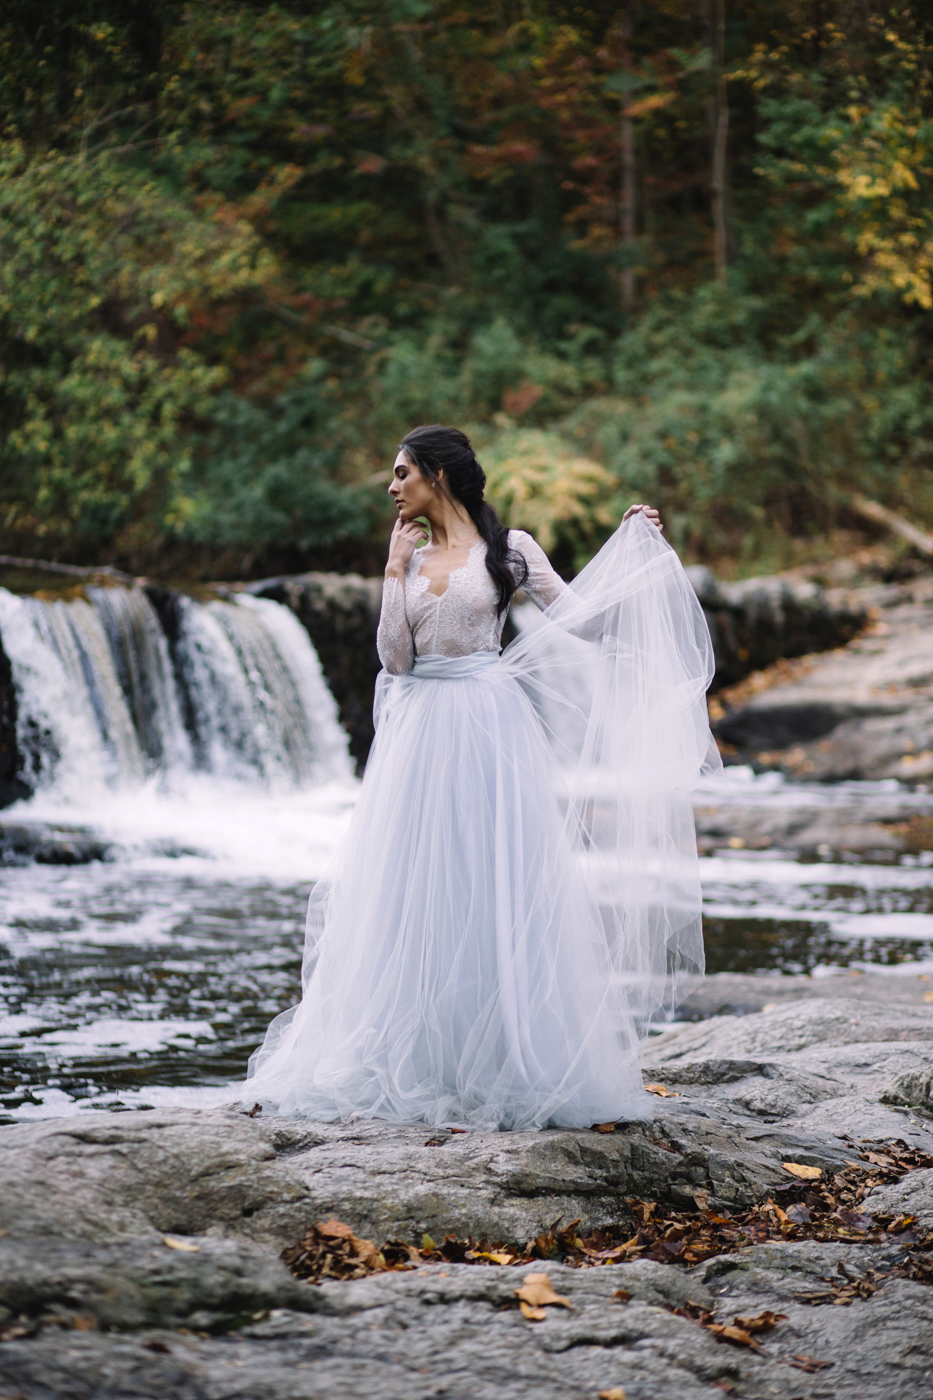 philadelphia-wedding-photographer-valley-green-inn-boho-geode-whimsical-philly-waterfall-weddings-photography-fine-art-91.jpg